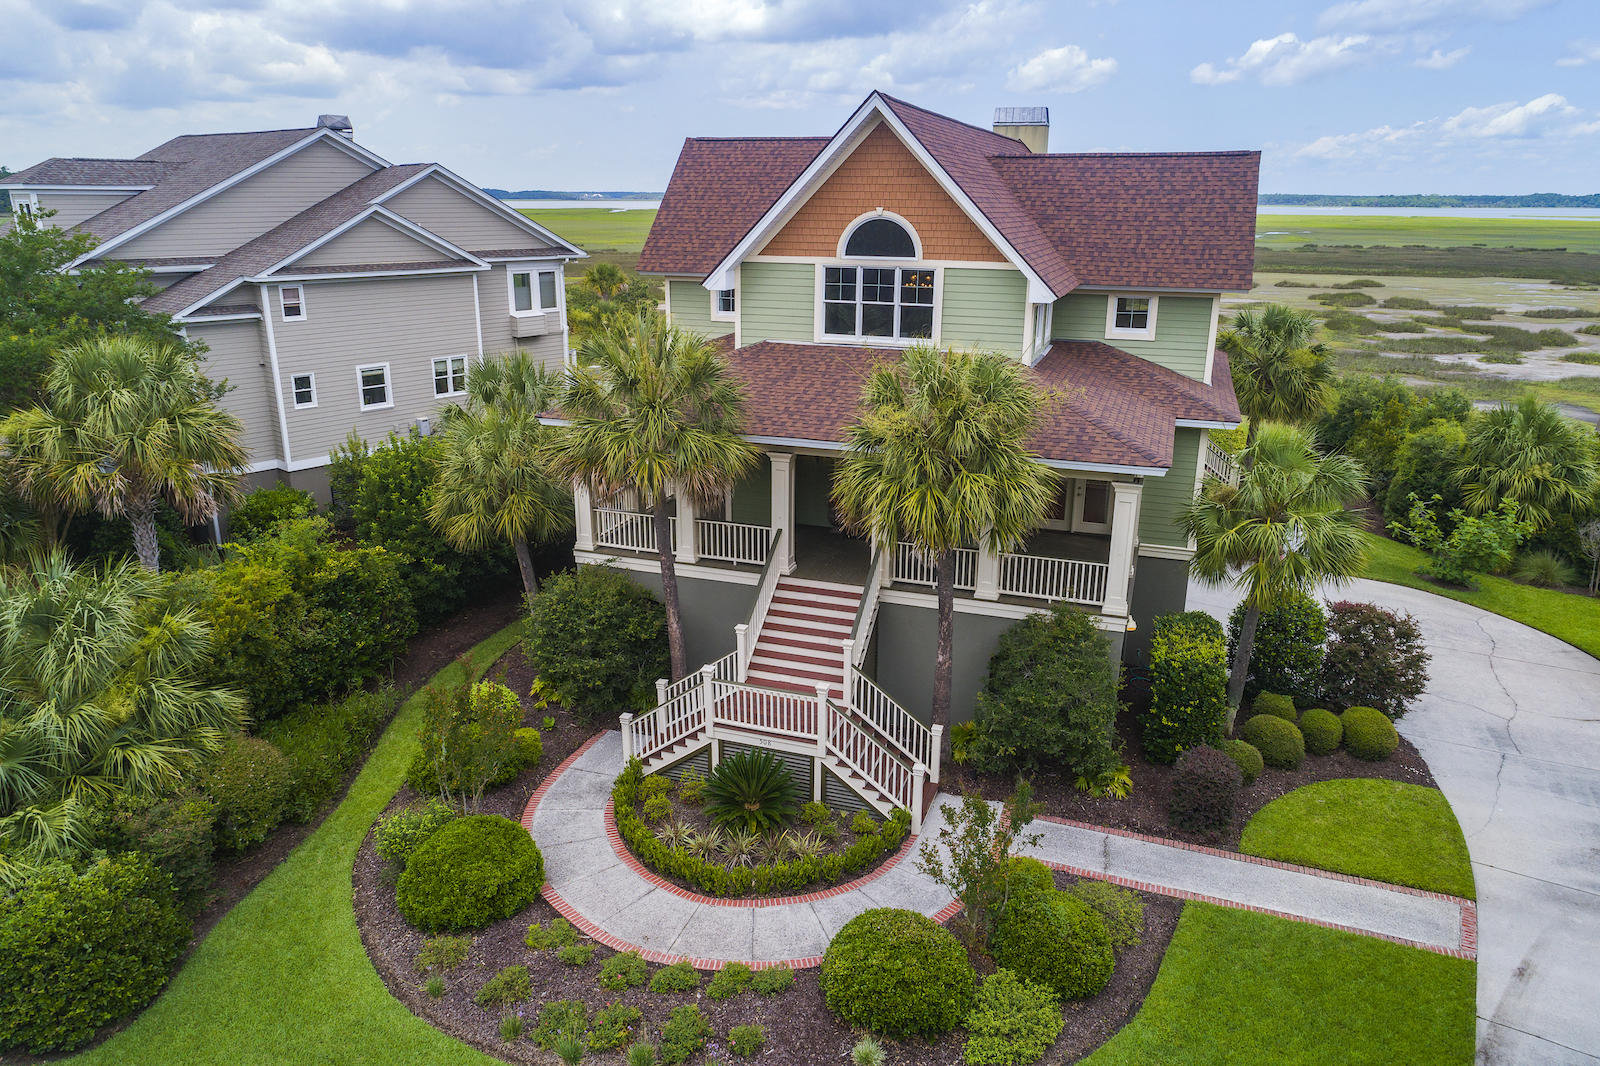 Belle Hall Homes For Sale - 508 Island Walk West, Mount Pleasant, SC - 52